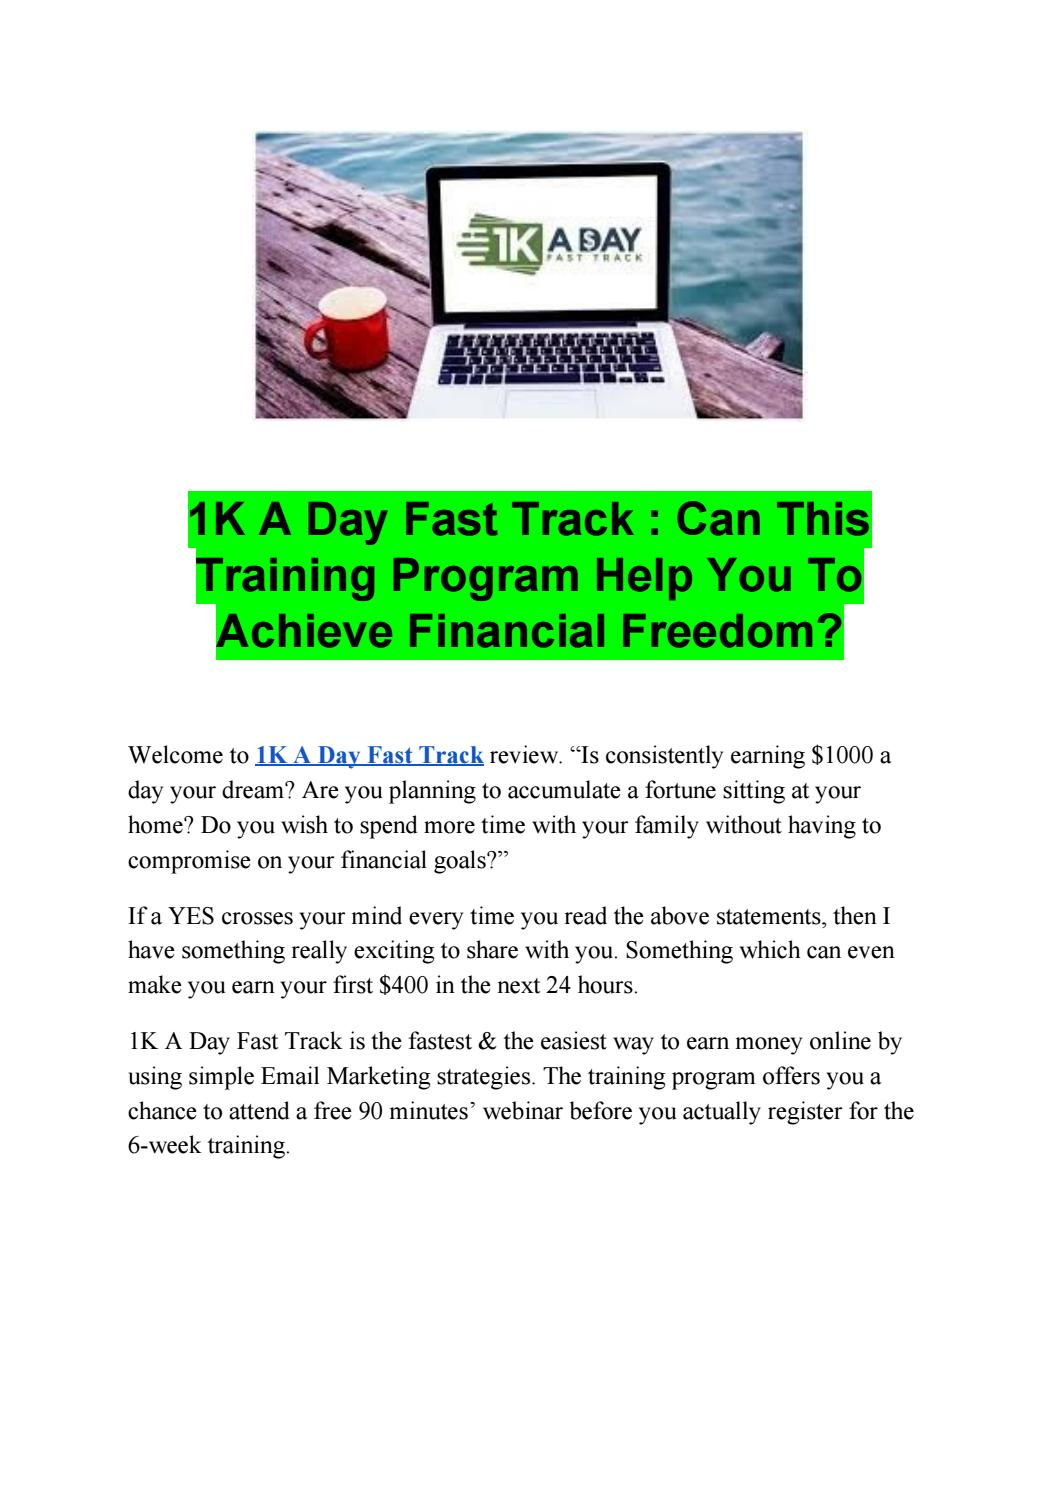 Buy Training Program 1k A Day Fast Track Price